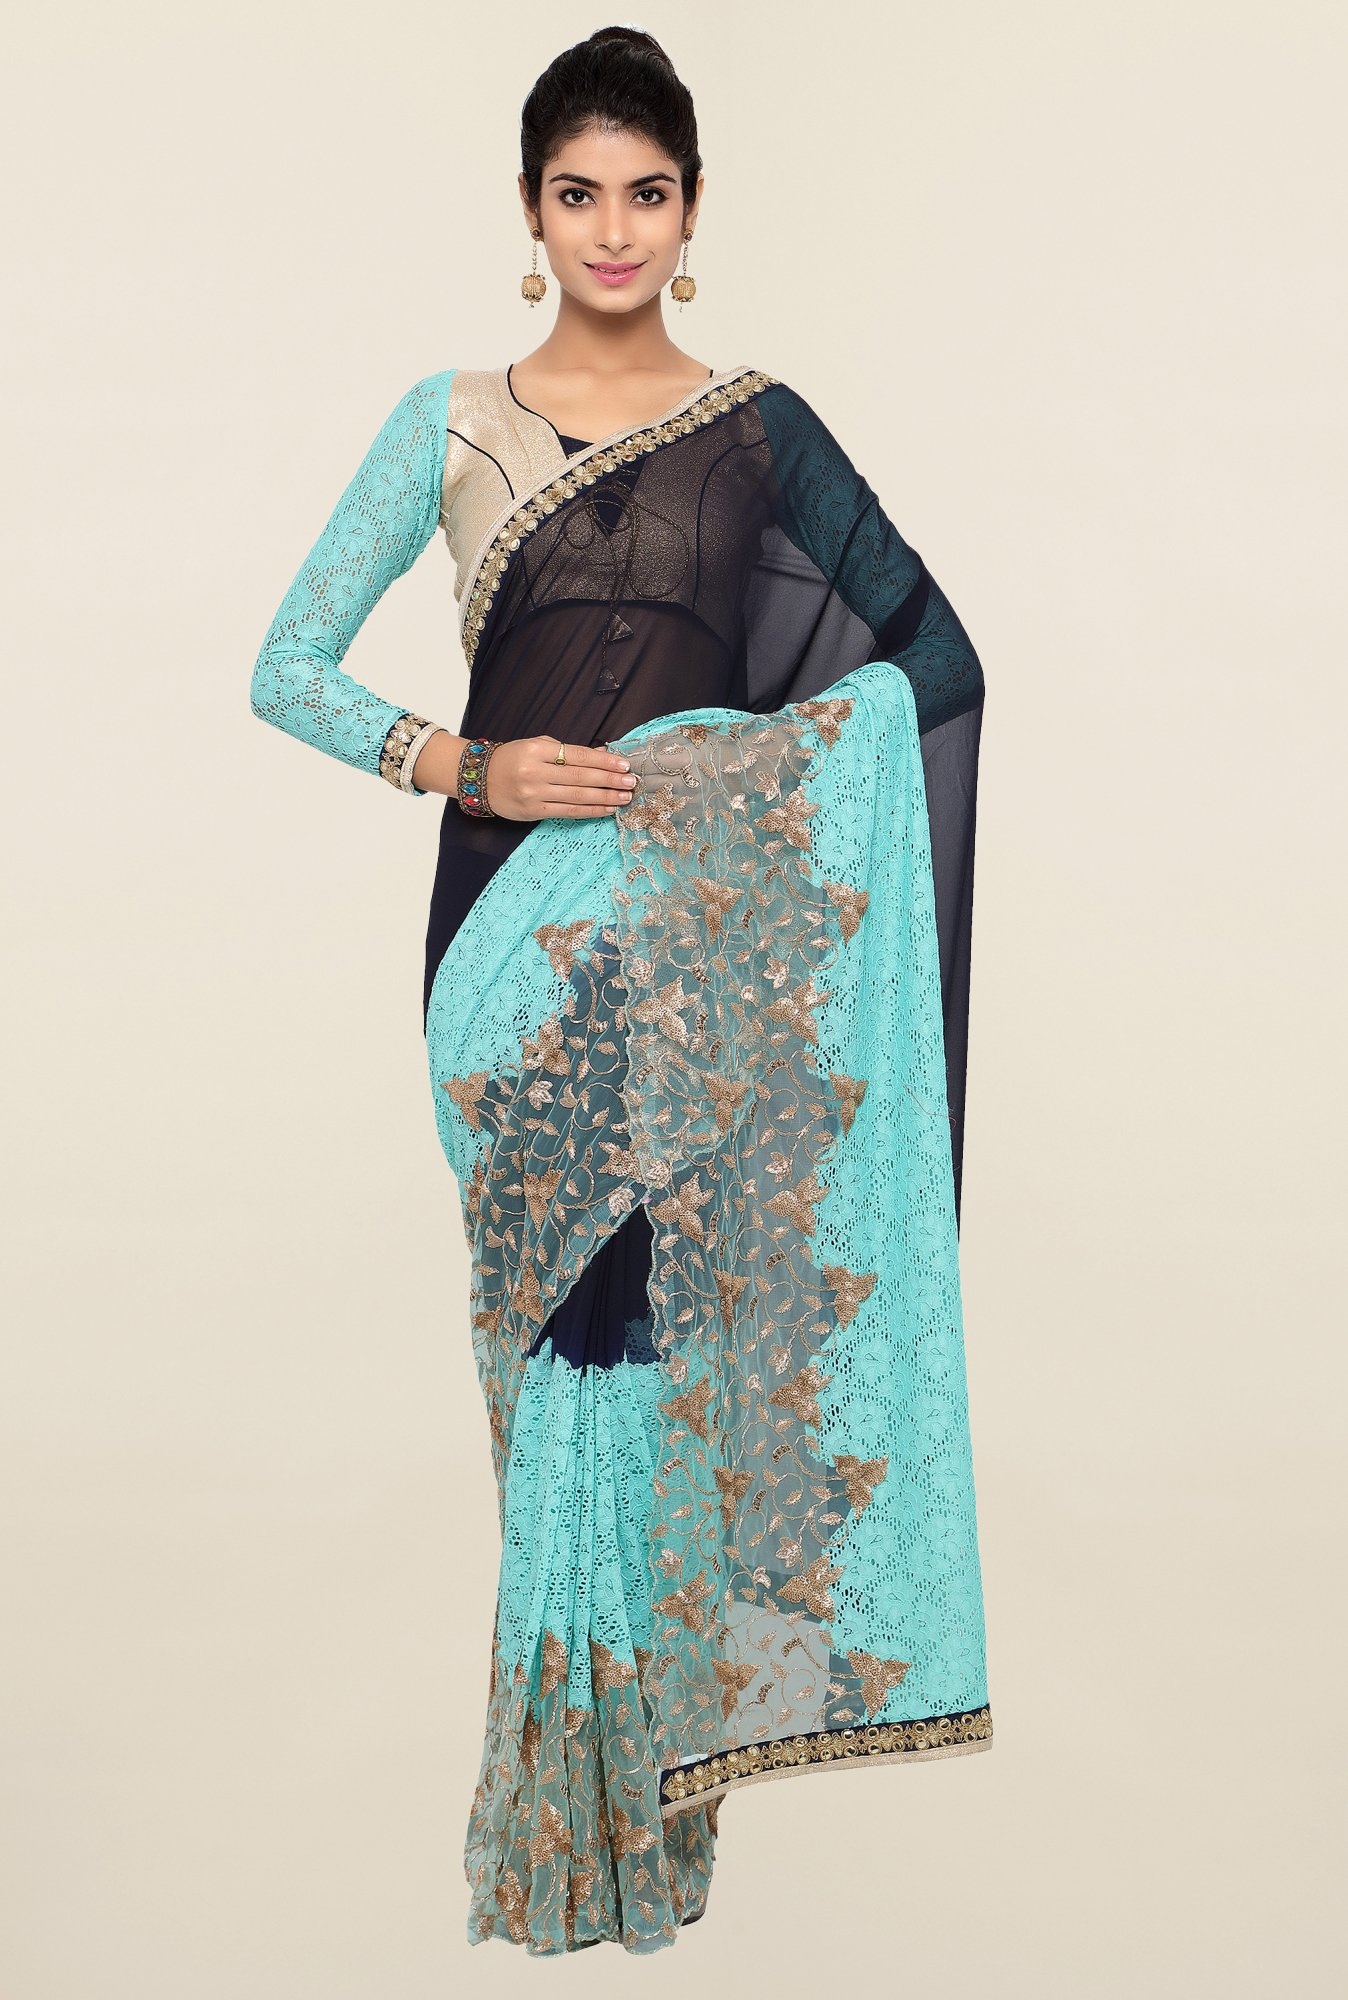 Triveni Blue & Black Embellished Faux Georgette Saree